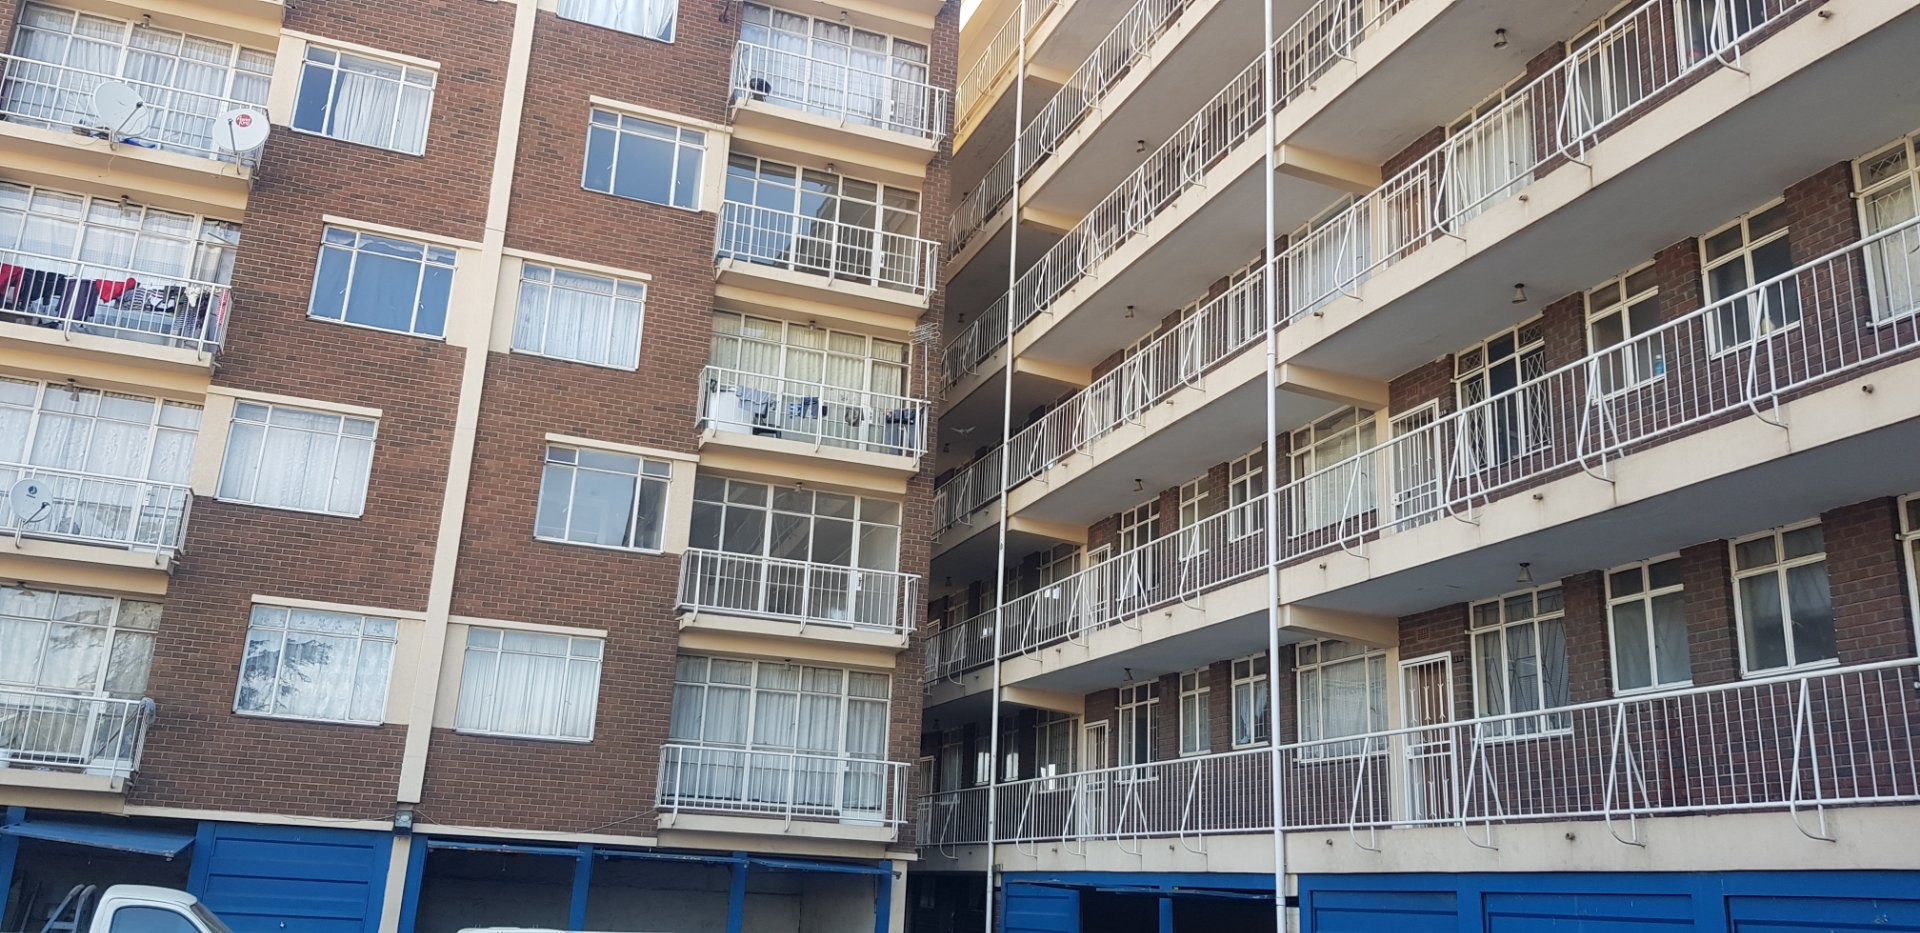 Flat for rent in Vereeniging